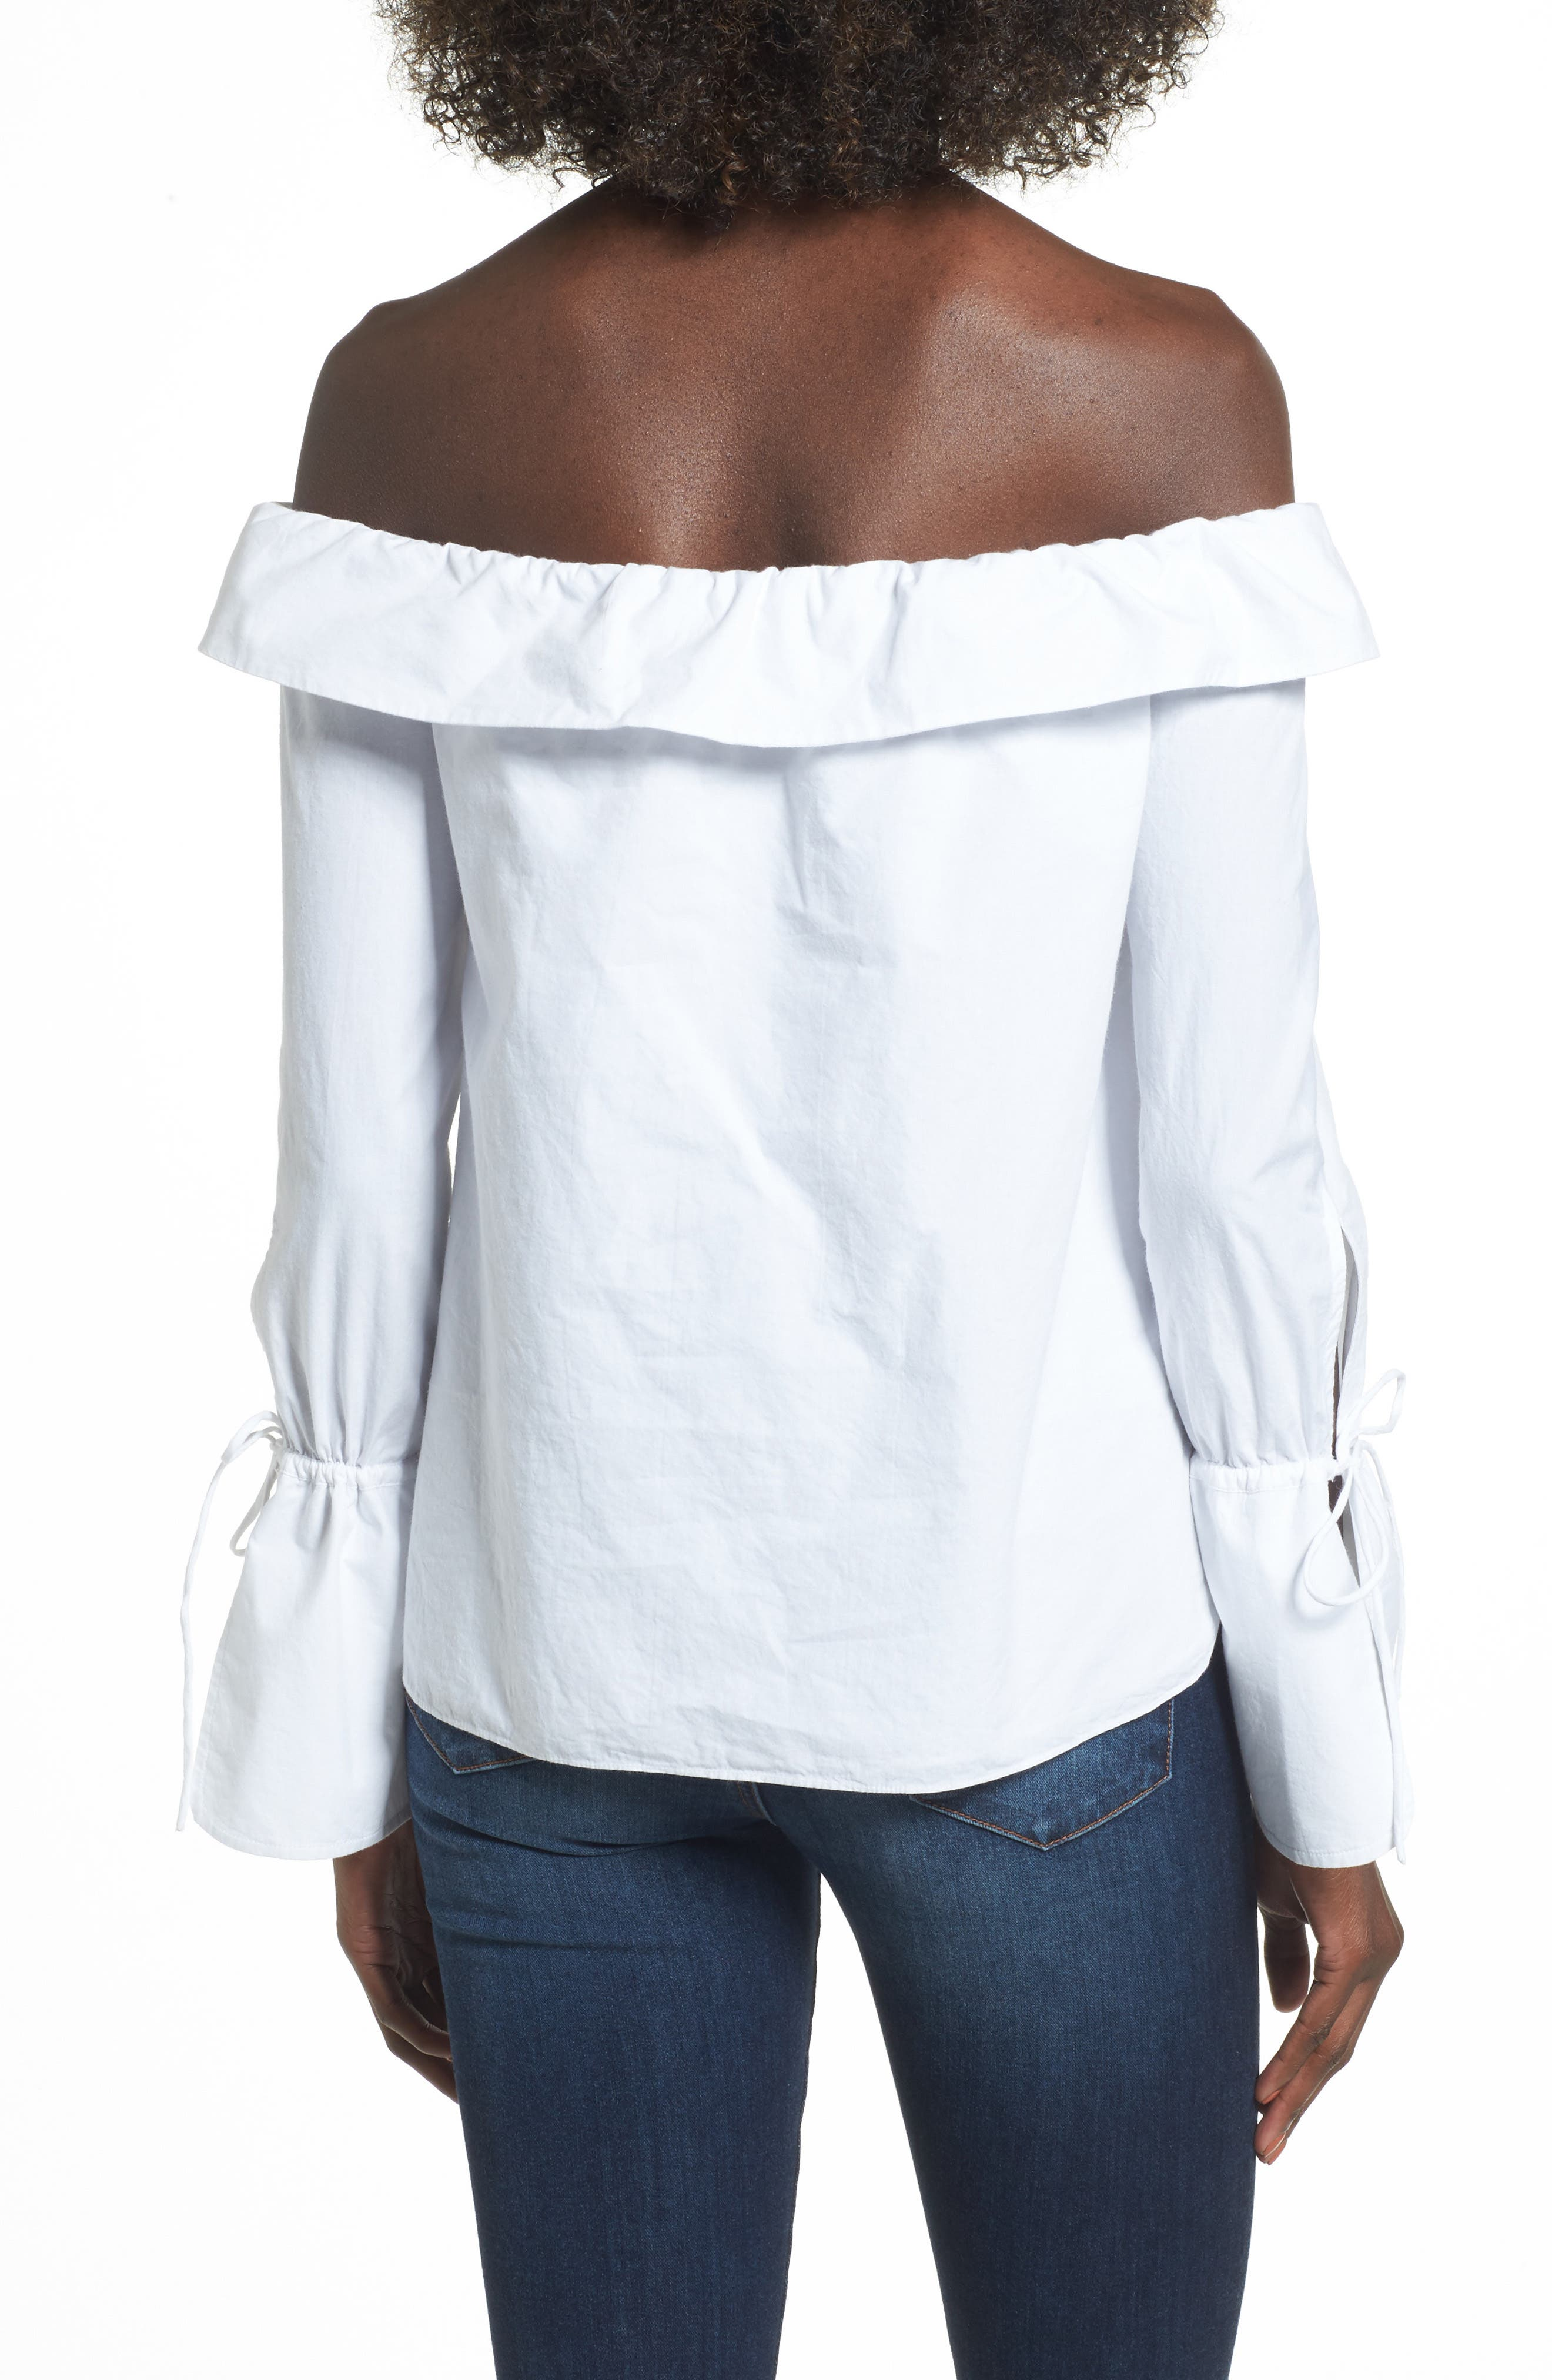 L'Academie Aria Off the Shoulder Blouse,                             Alternate thumbnail 2, color,                             100